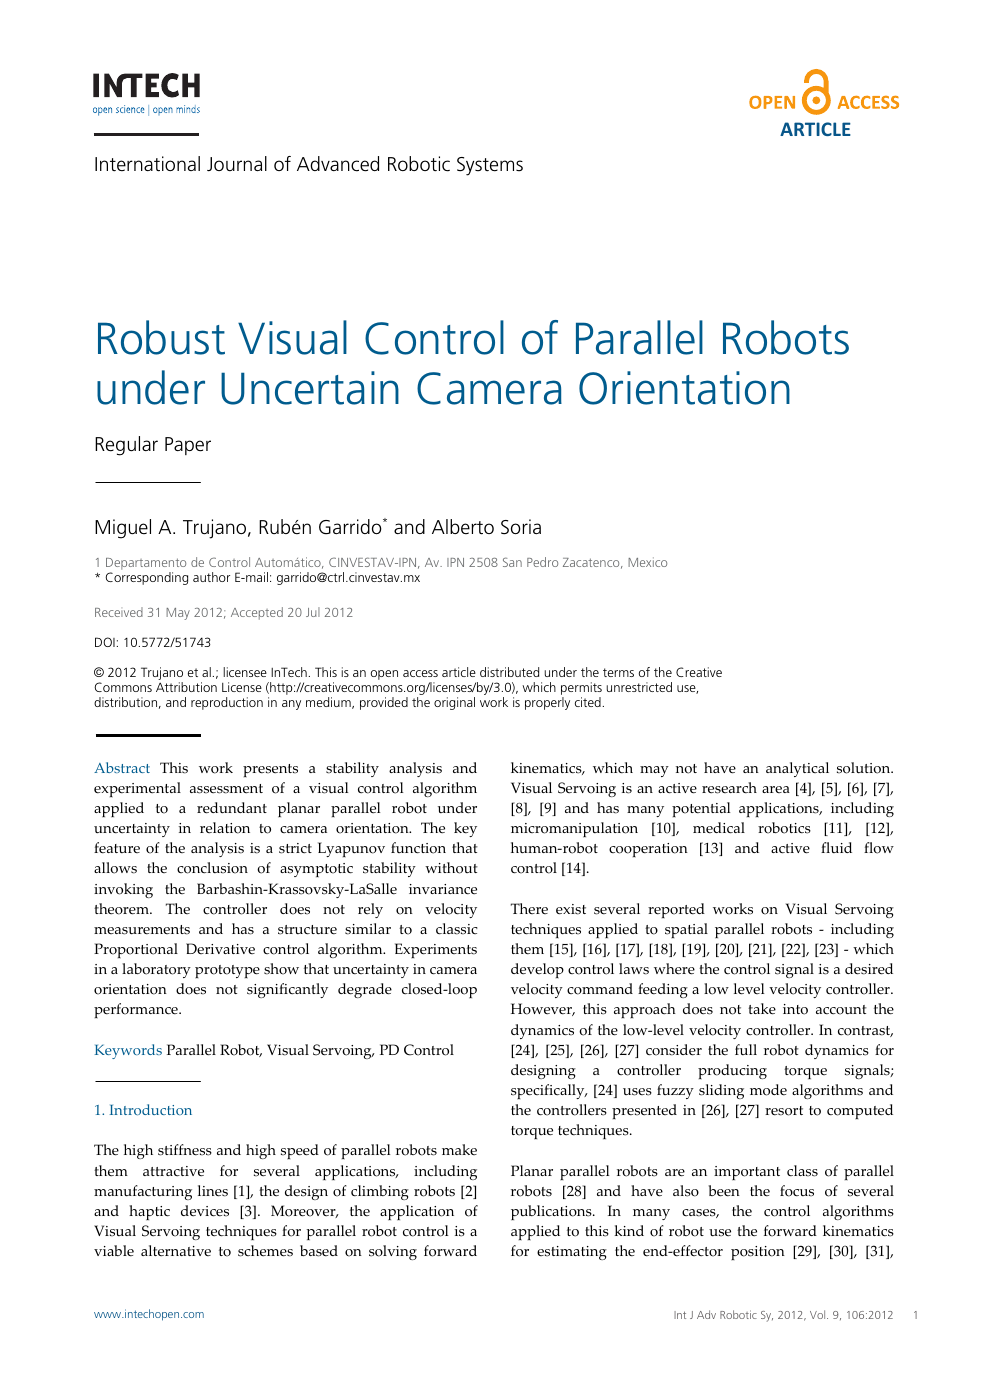 Robust Visual Control of Parallel Robots under Uncertain